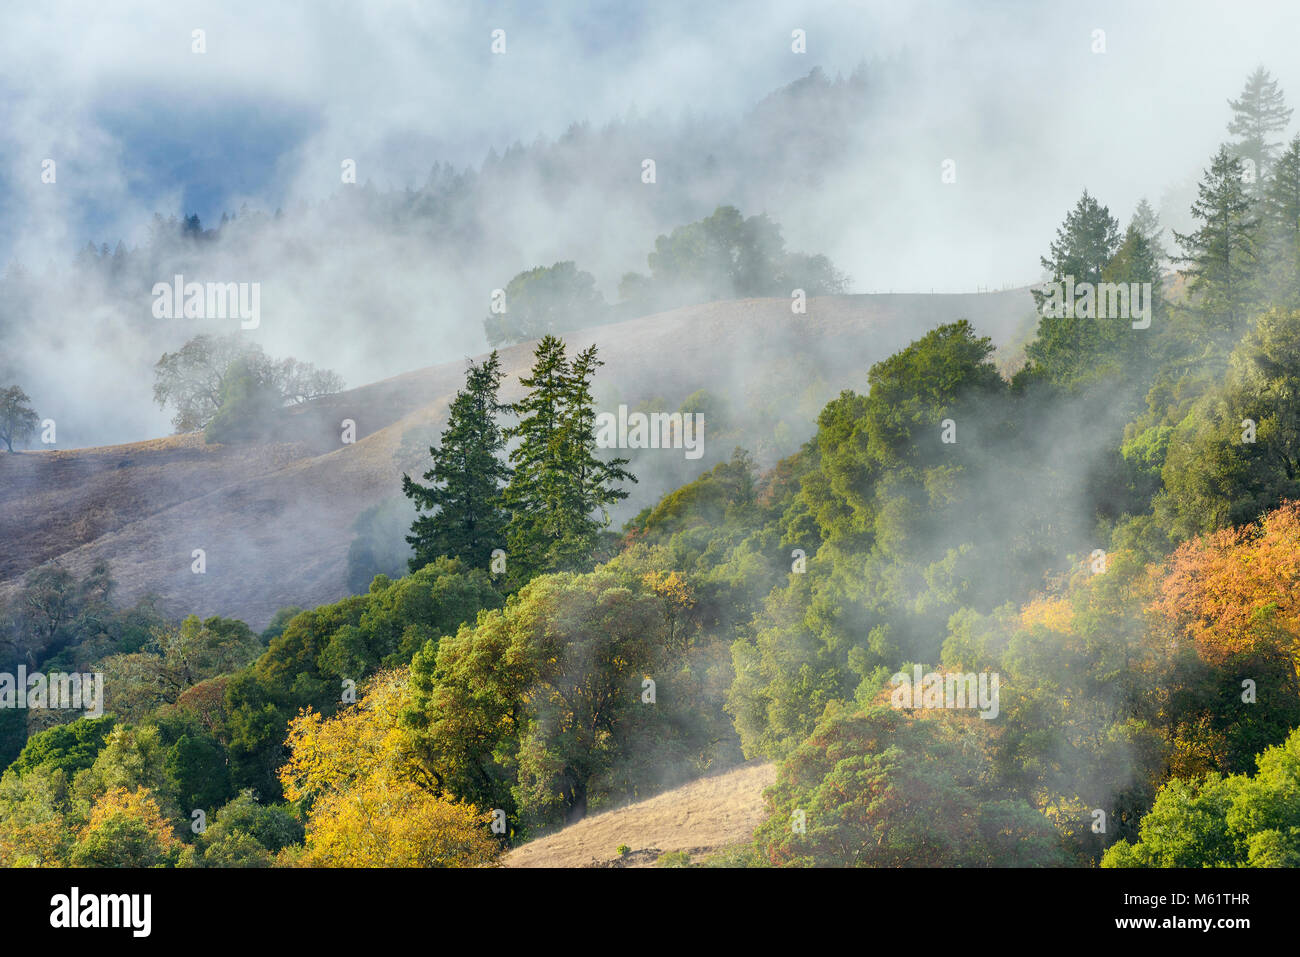 Sollevamento di nebbia, Acorn Ranch, Yorkville Highlands, Mendocino County, California Foto Stock